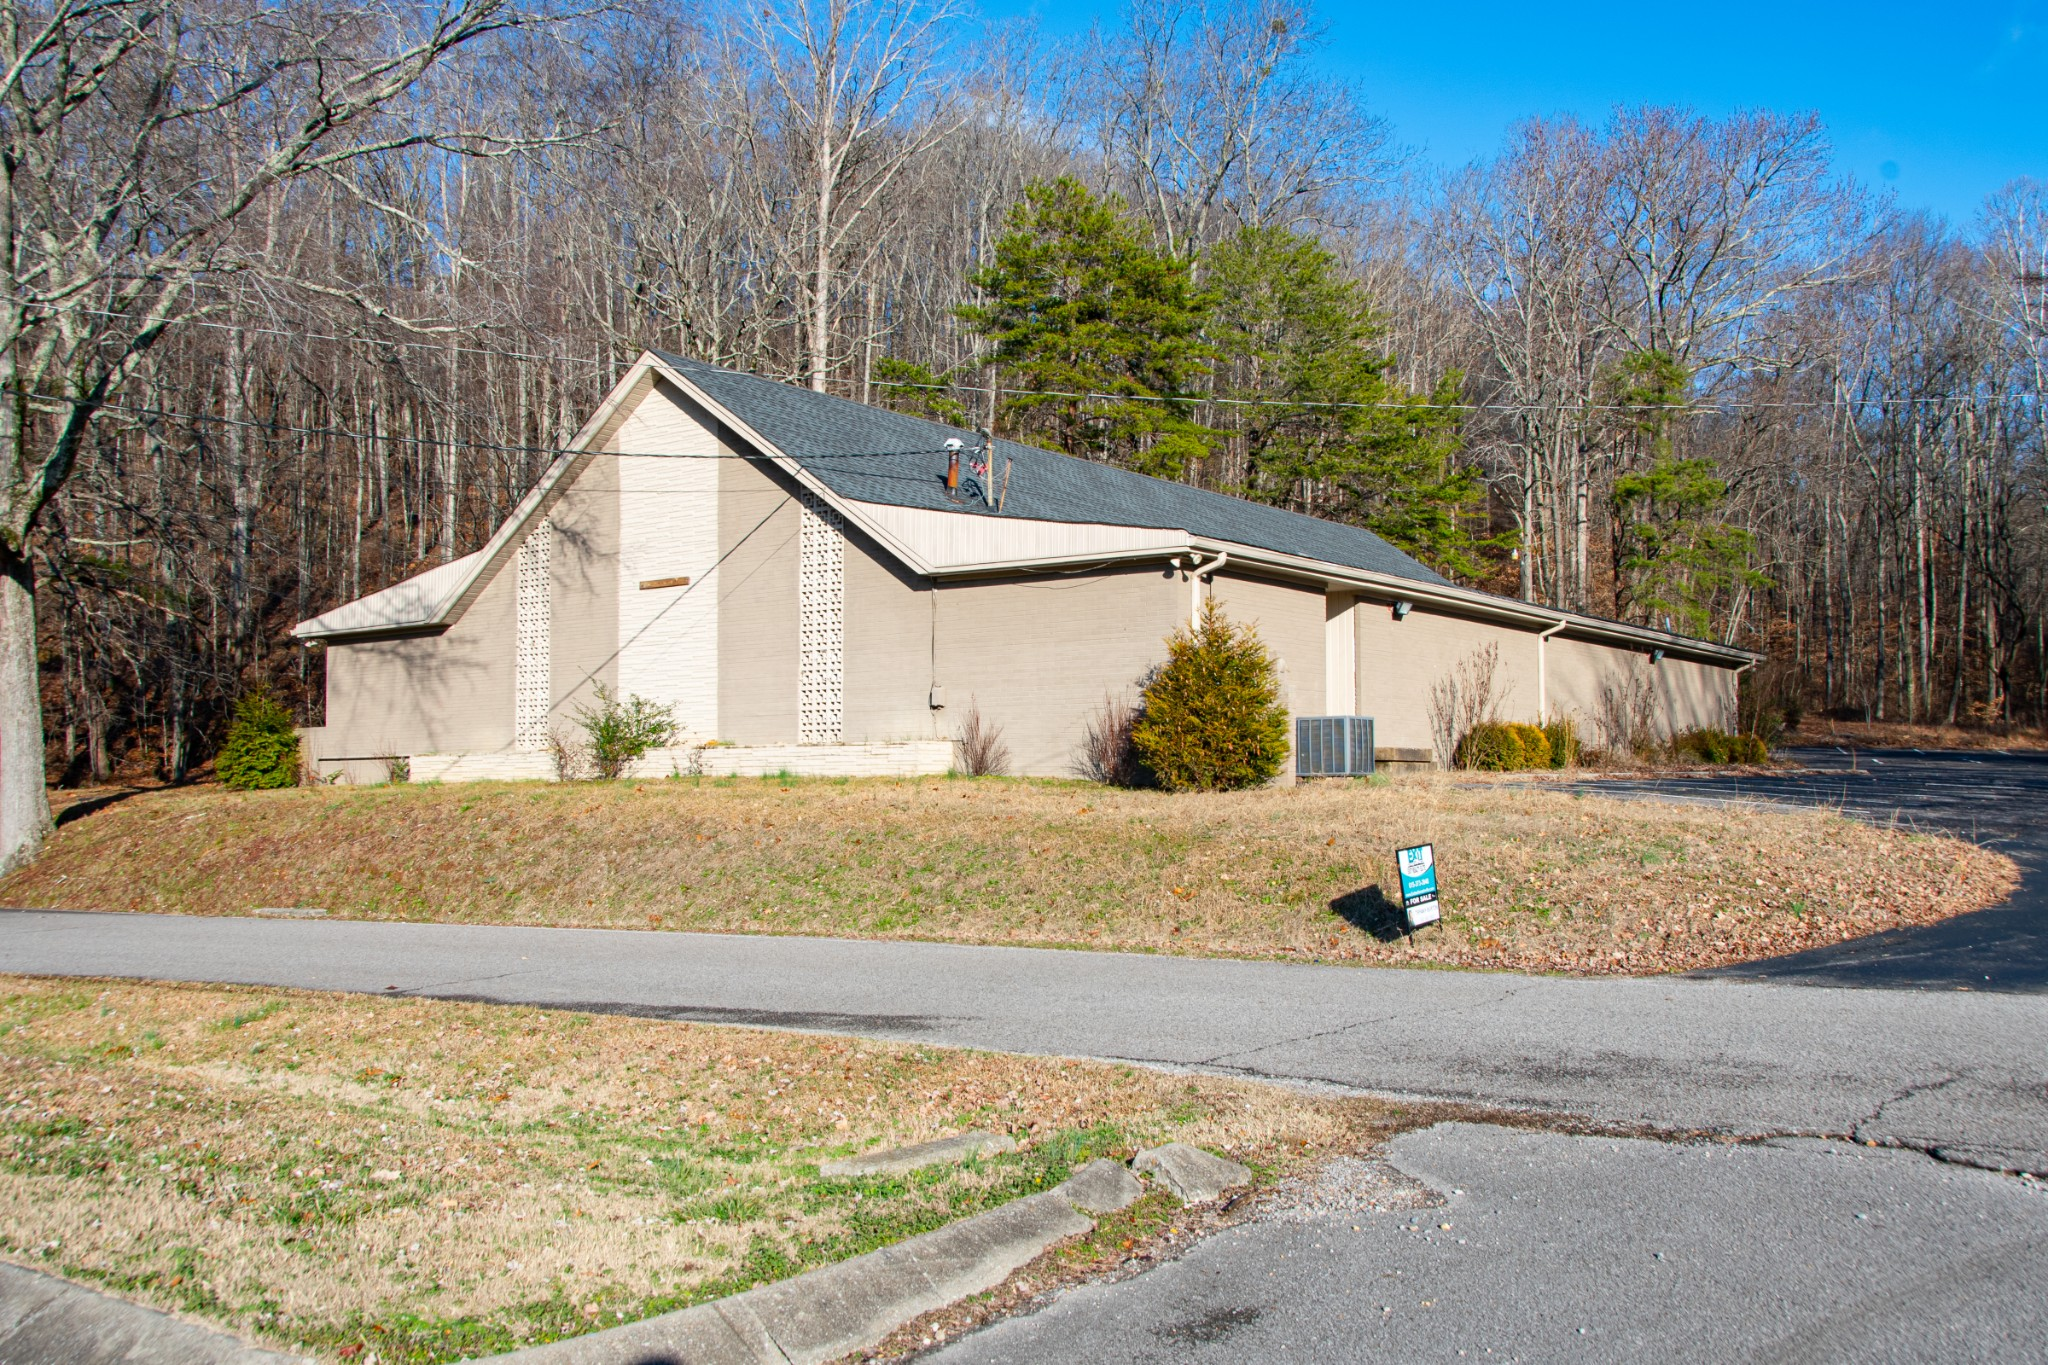 4410 Hannah Ford Rd, Pegram, TN 37143 - Pegram, TN real estate listing